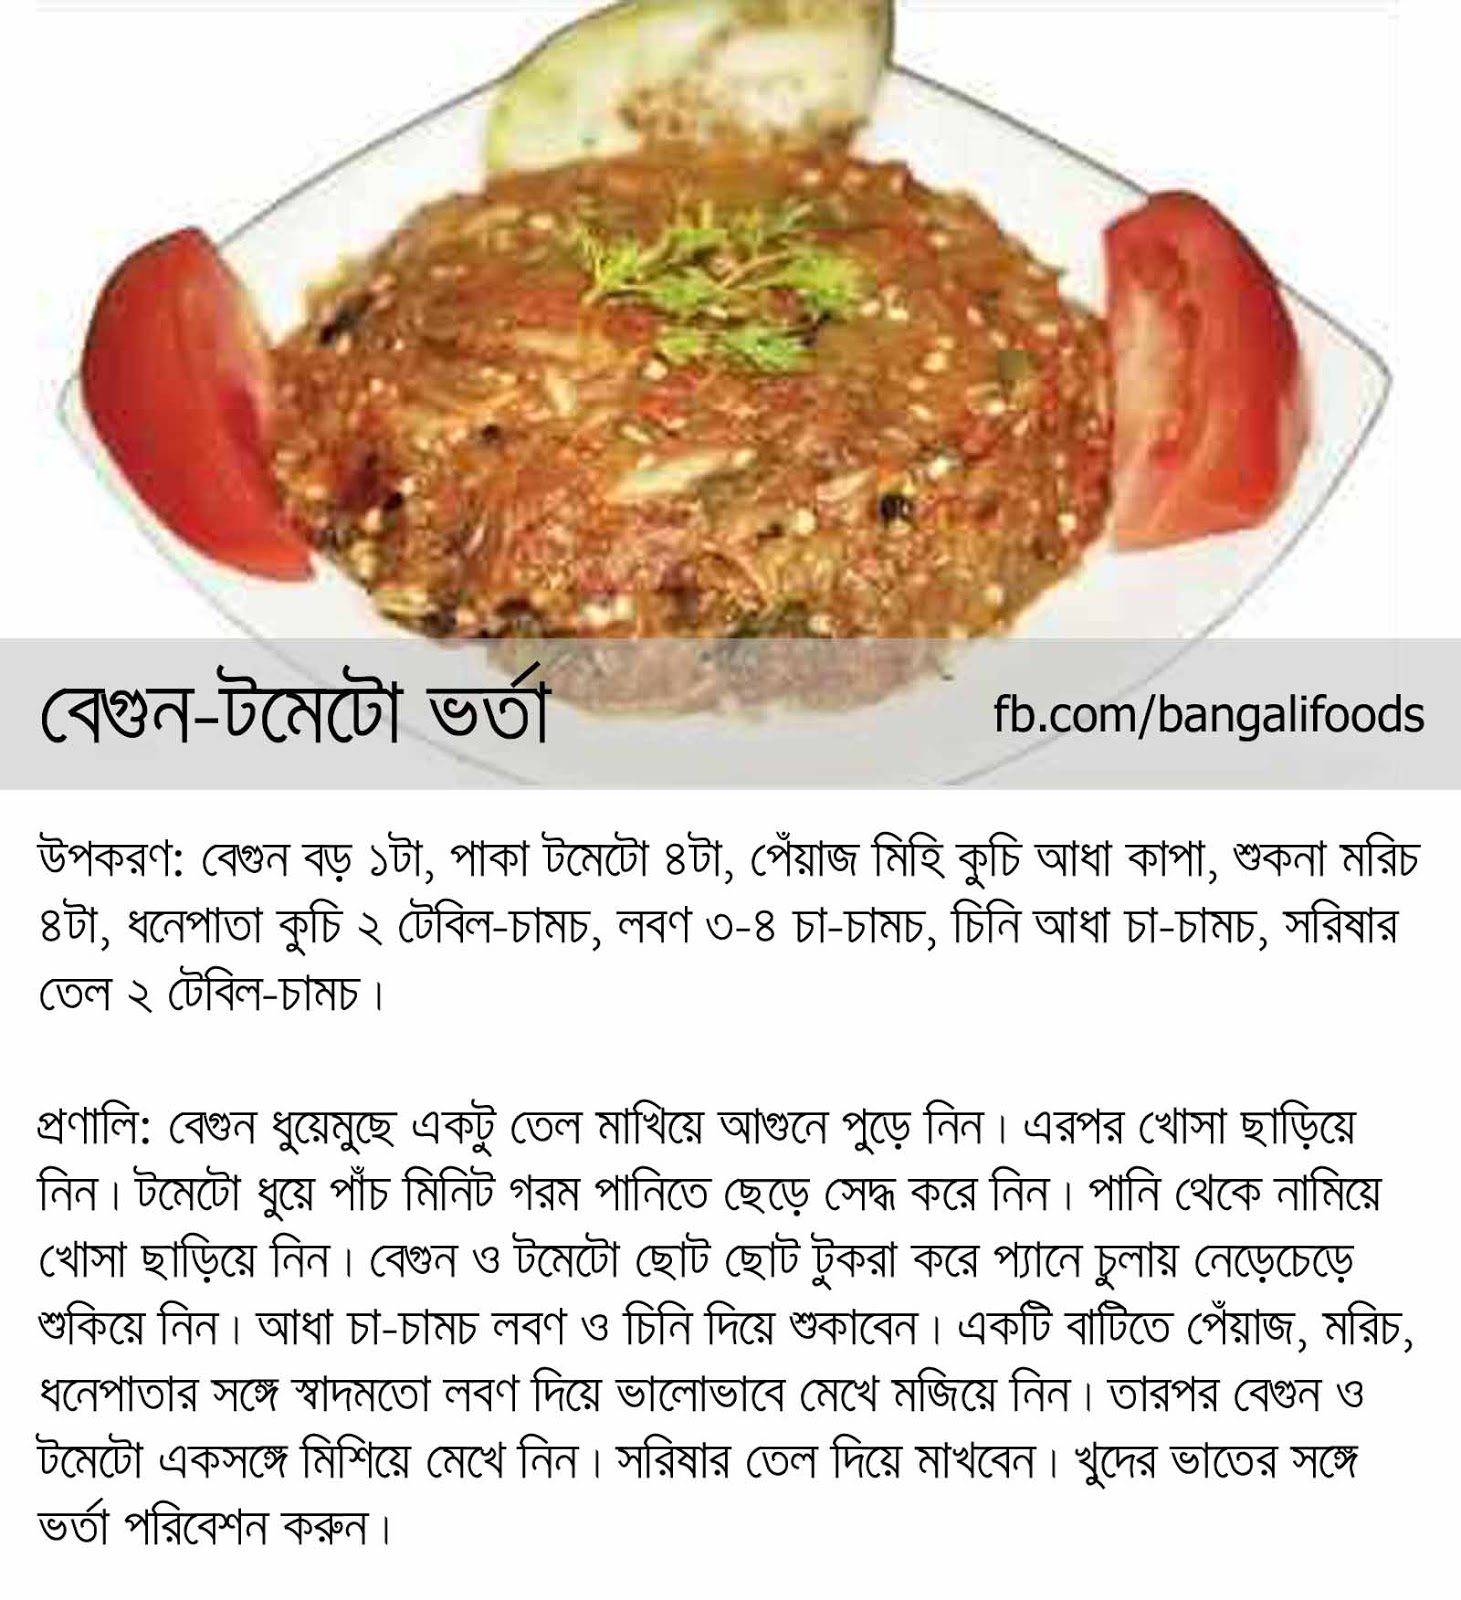 Bangali foods yummy bhorta recipes in bengali bengali bhorta recipes are not just only yummy its yummiest food ever forumfinder Gallery